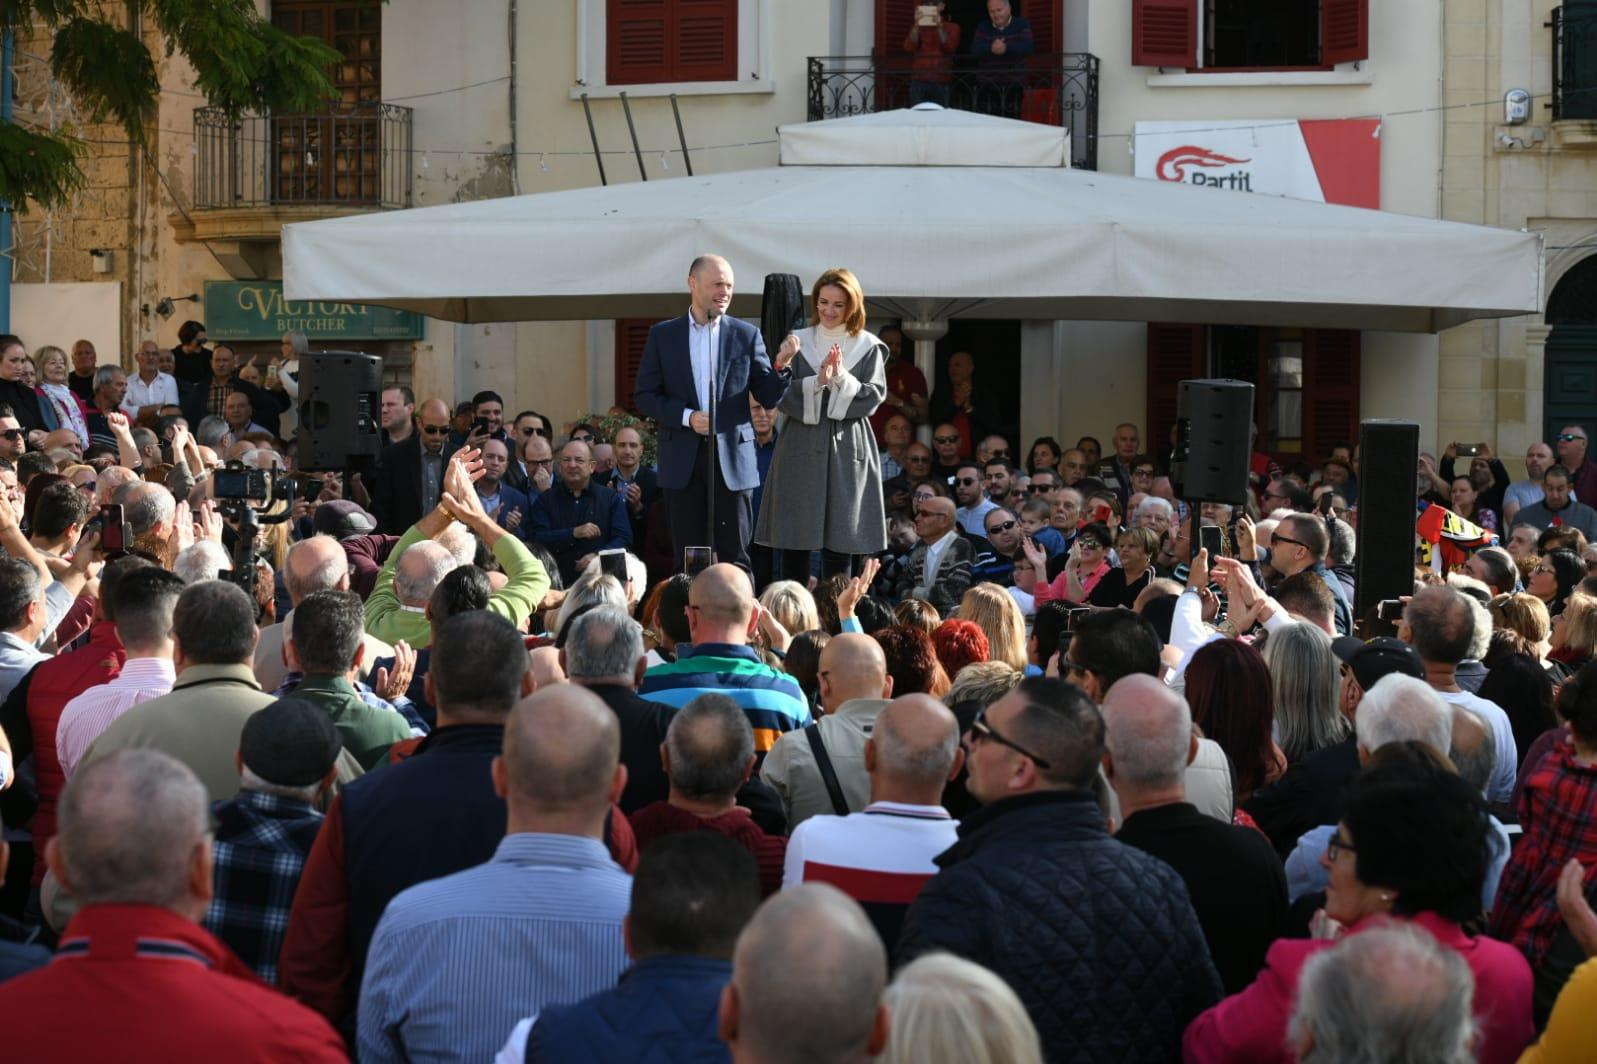 Dr Muscat, accompanied by Mrs Muscat, addressing the Naxxar crowd. Photo: Matthew Mirabelli